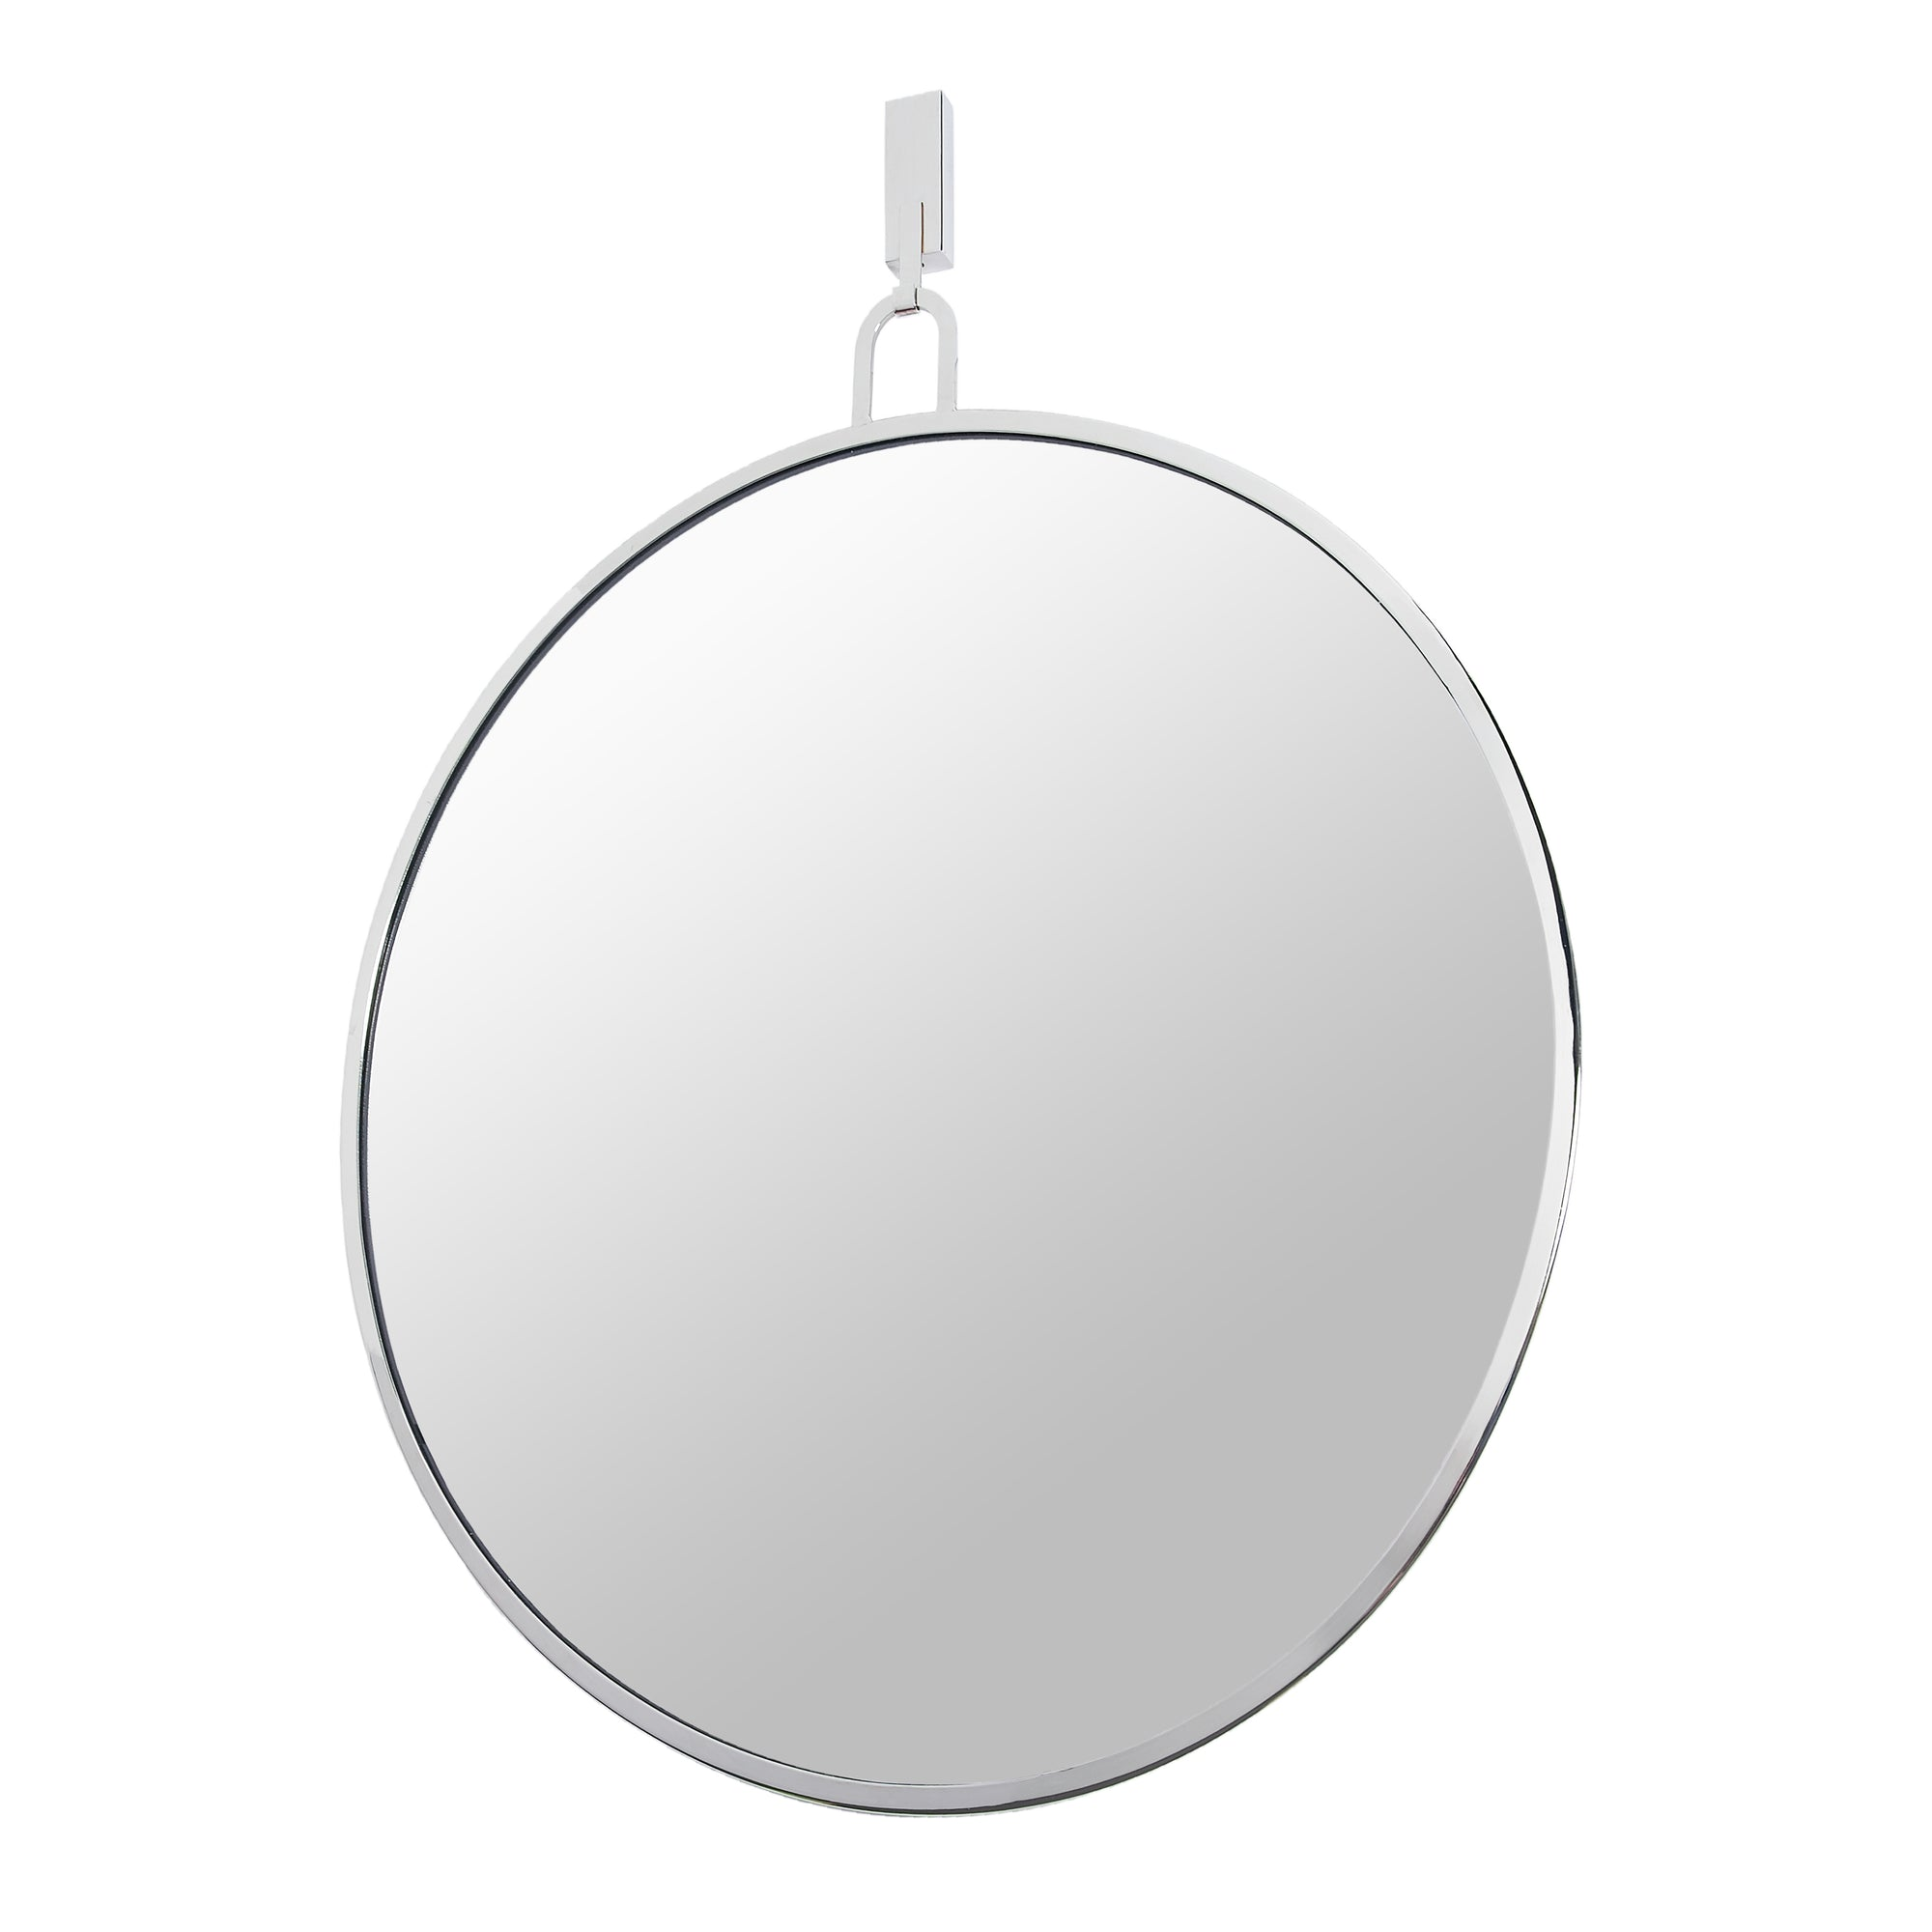 Stopwatch 30-in Round Accent Mirror - Polished Nickel - 407A01PN